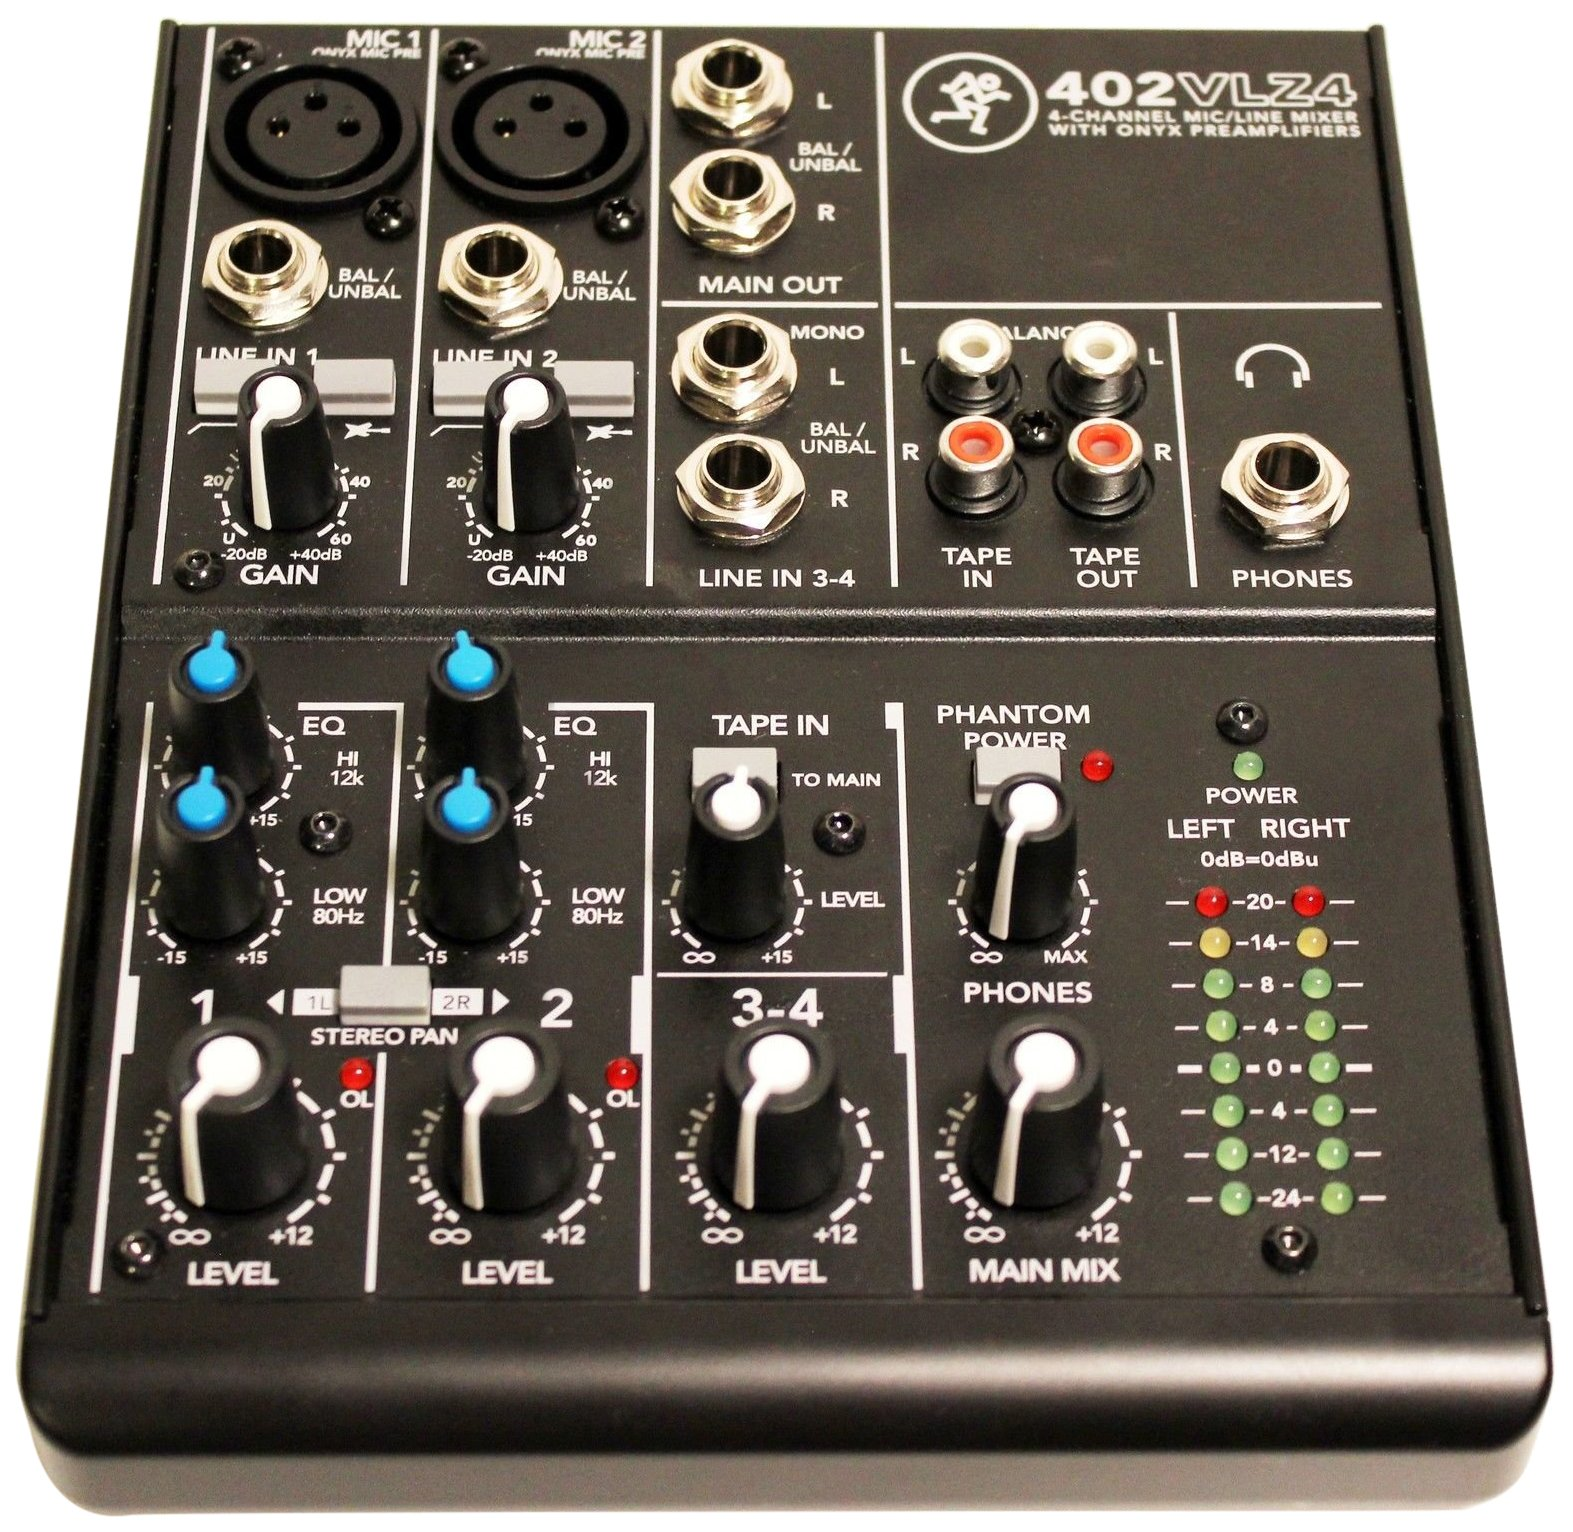 Mackie 402VLZ4, 4-channel Ultra Compact Mixer with High Quality Onyx Preamps by Mackie